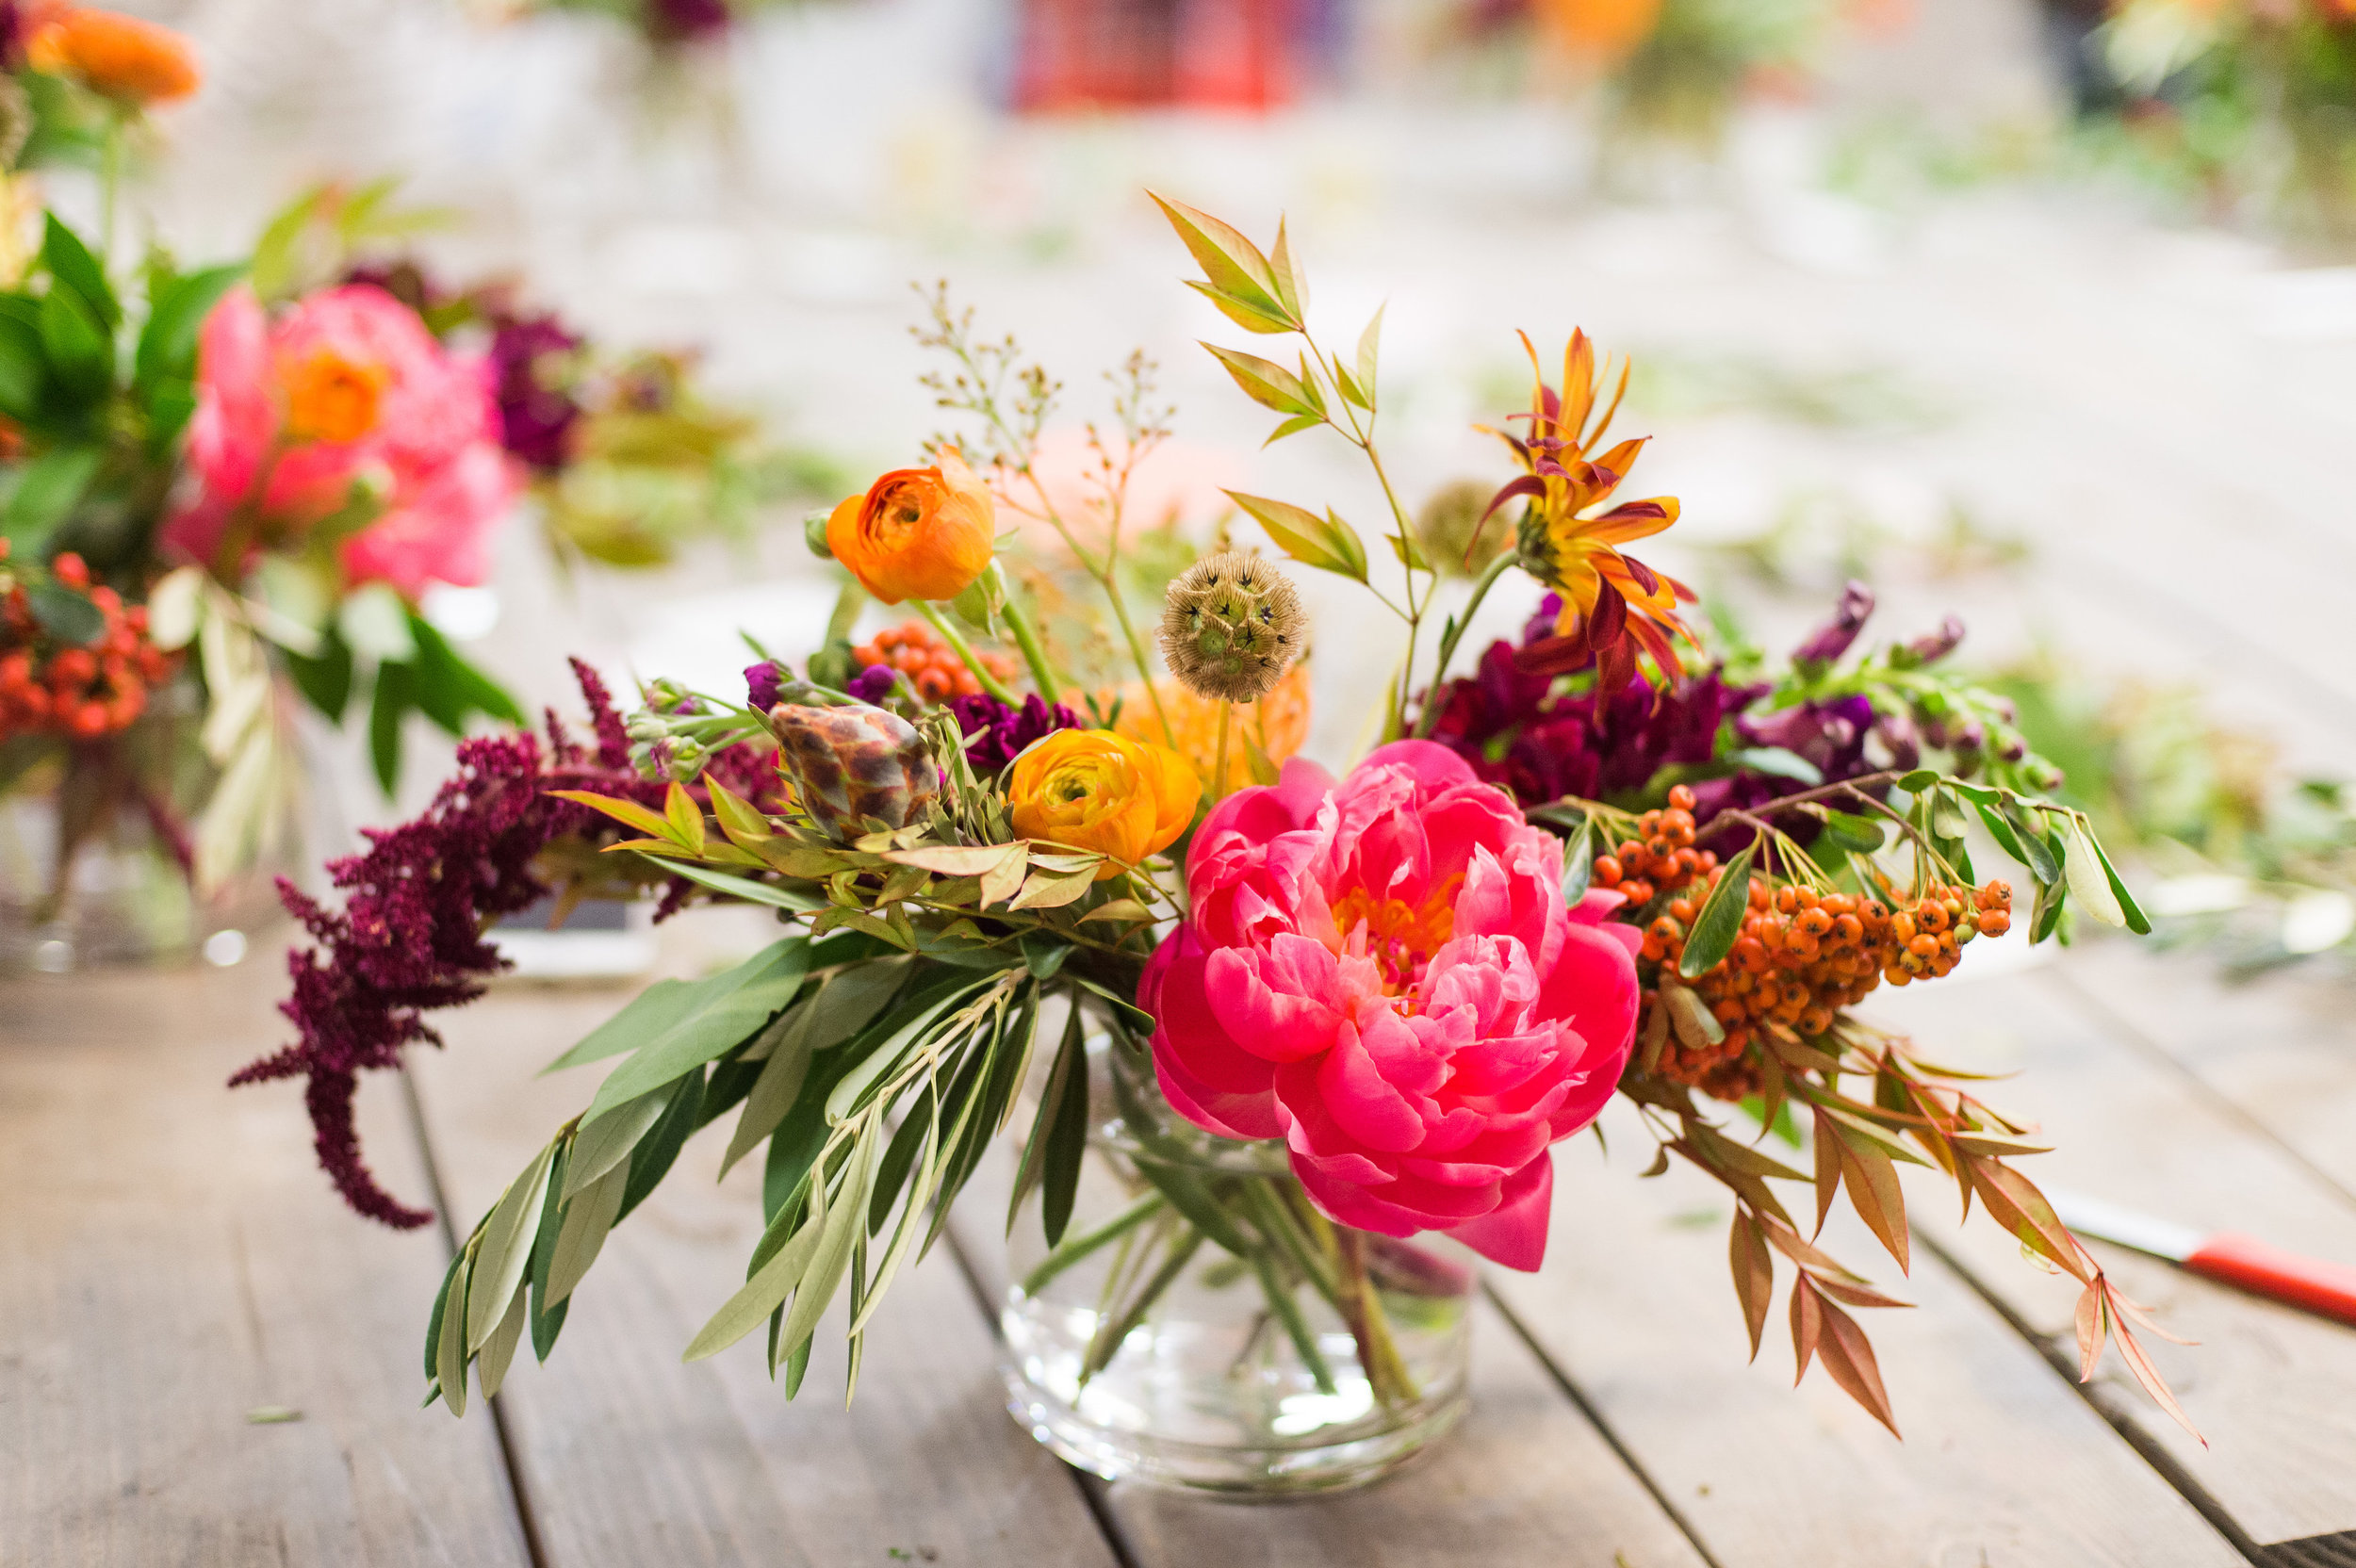 Lace and Lilies floral design workshop, fort collins fun